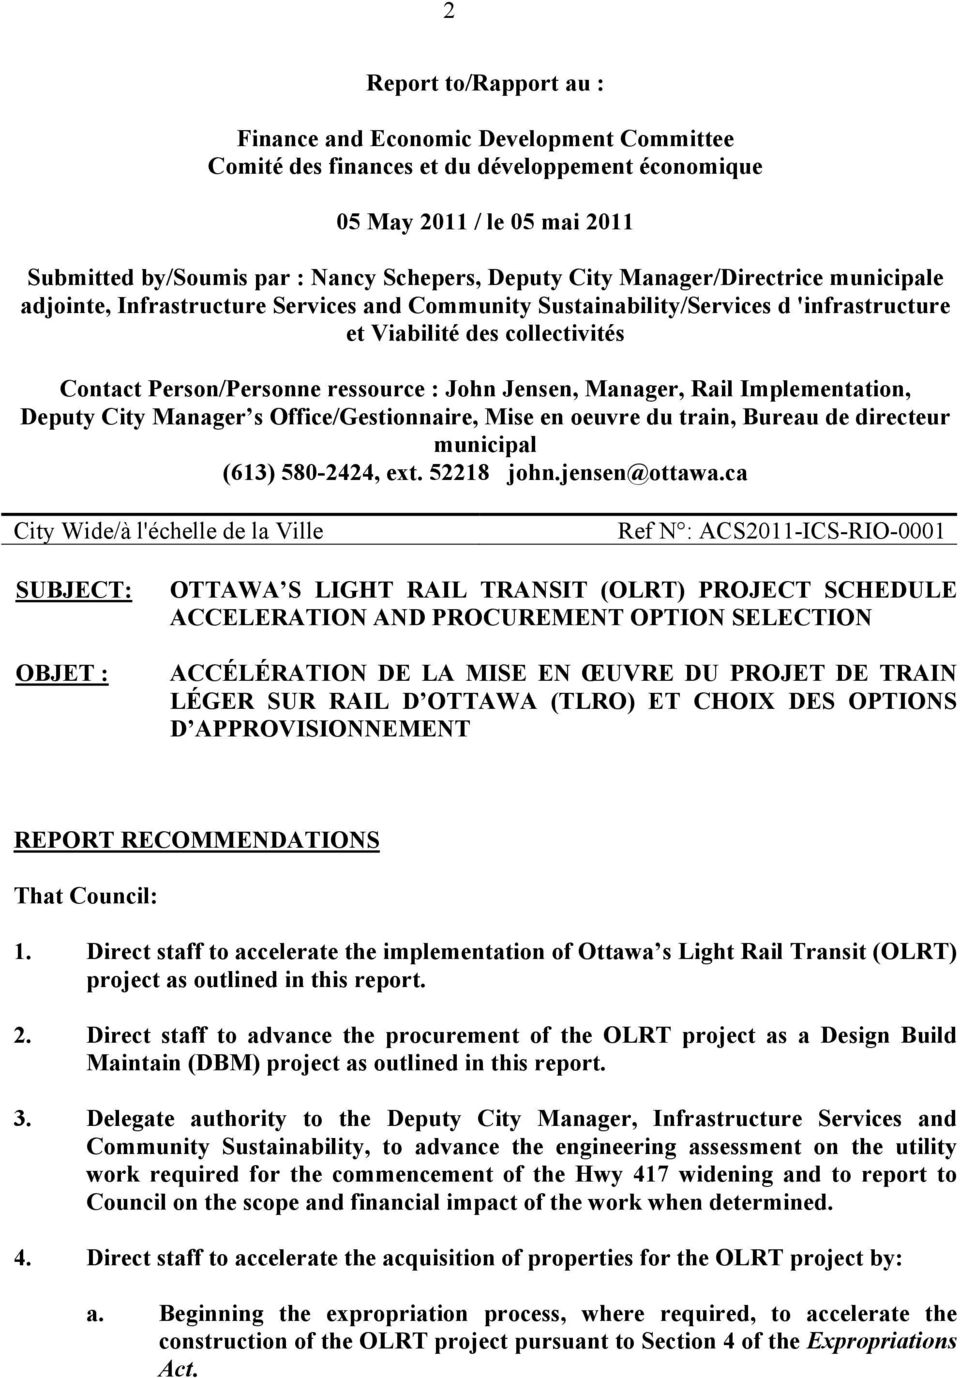 Jensen, Manager, Rail Implementation, Deputy City Manager s Office/Gestionnaire, Mise en oeuvre du train, Bureau de directeur municipal (613) 580-2424, ext. 52218 john.jensen@ottawa.